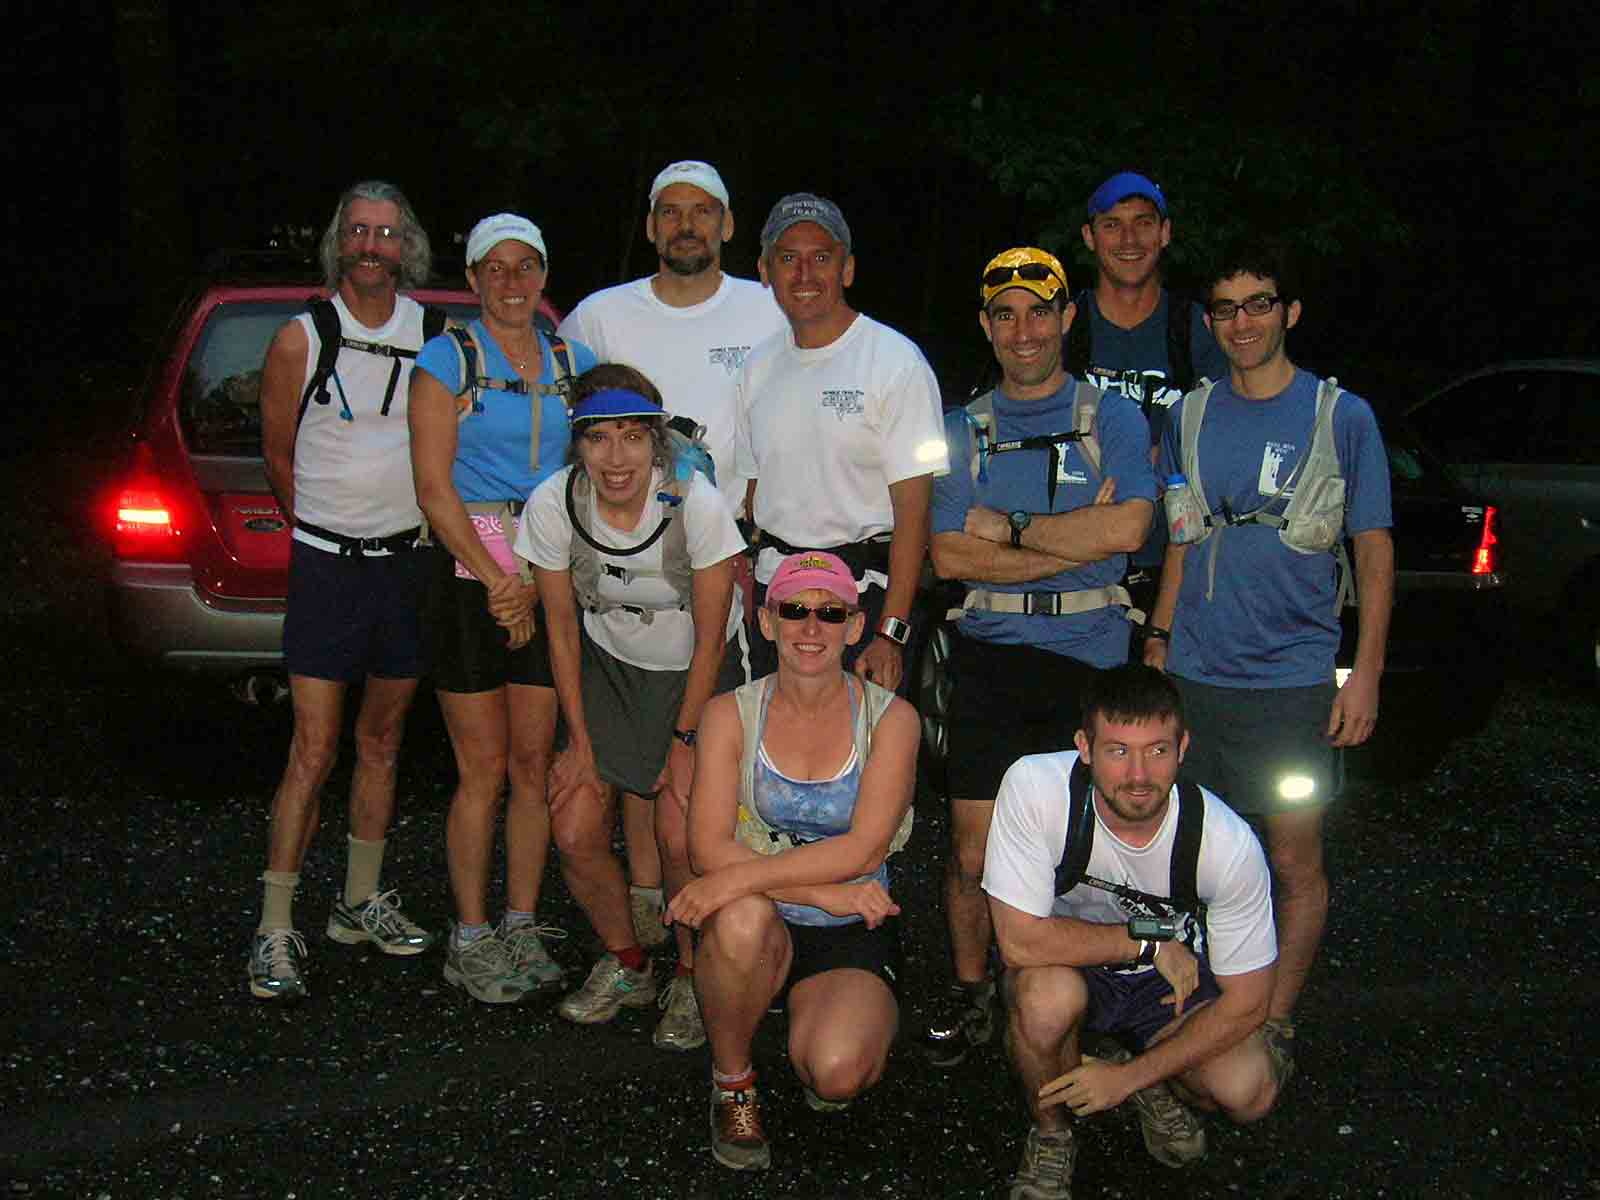 10 of the 11 starters line up for obligatory class photo prior to the start of the inaugural Martha Moats Baker Memorial 50K, June 21 2008